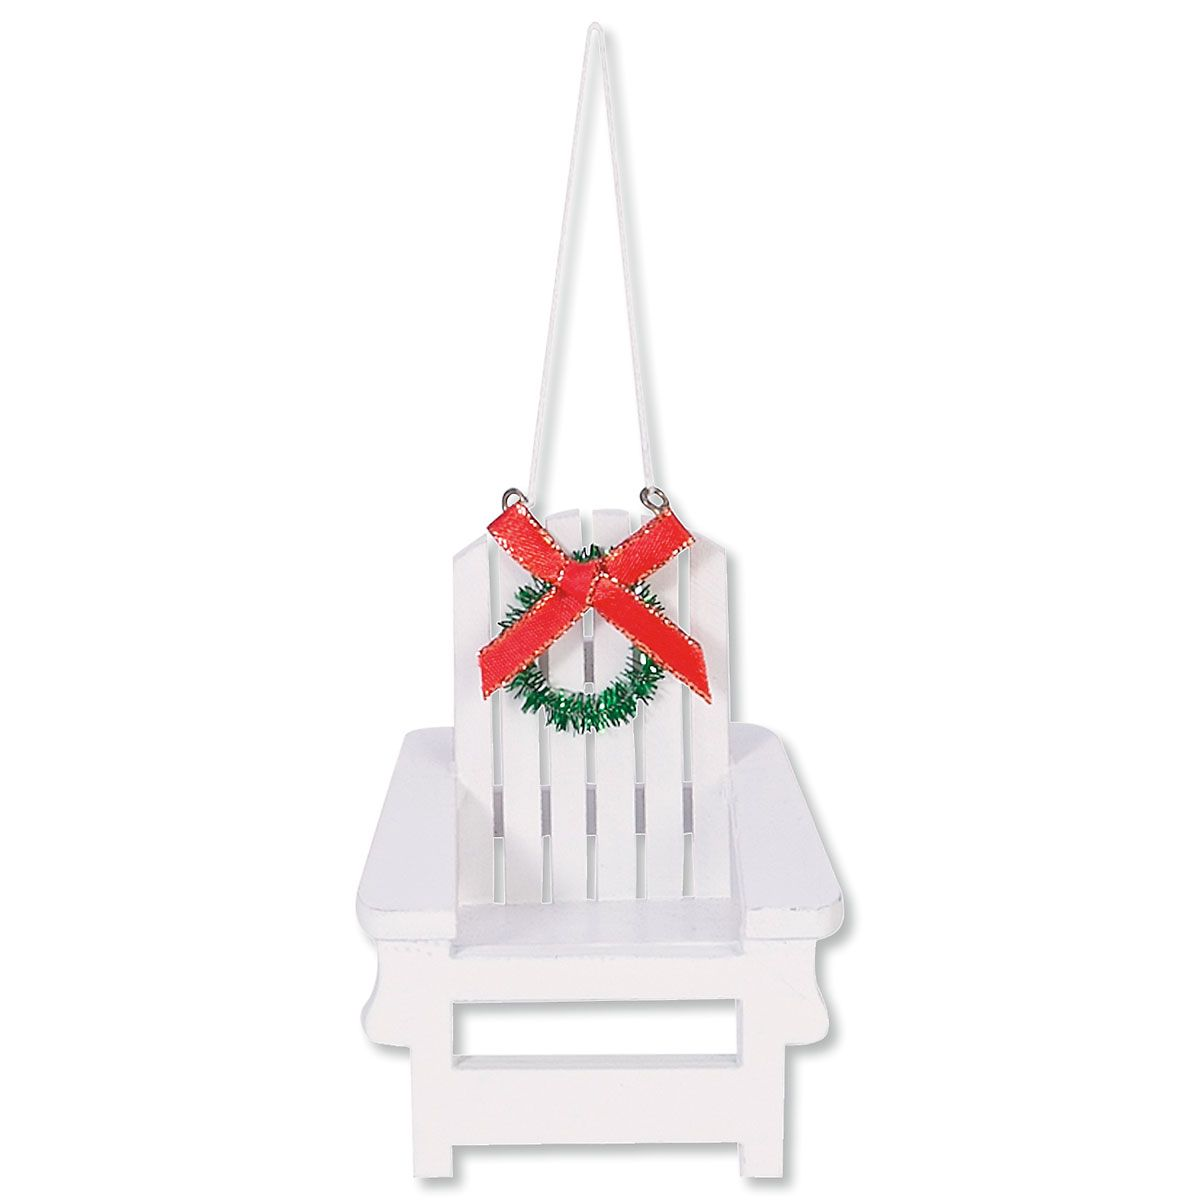 Adirondack Chair Beachy Christmas Ornament